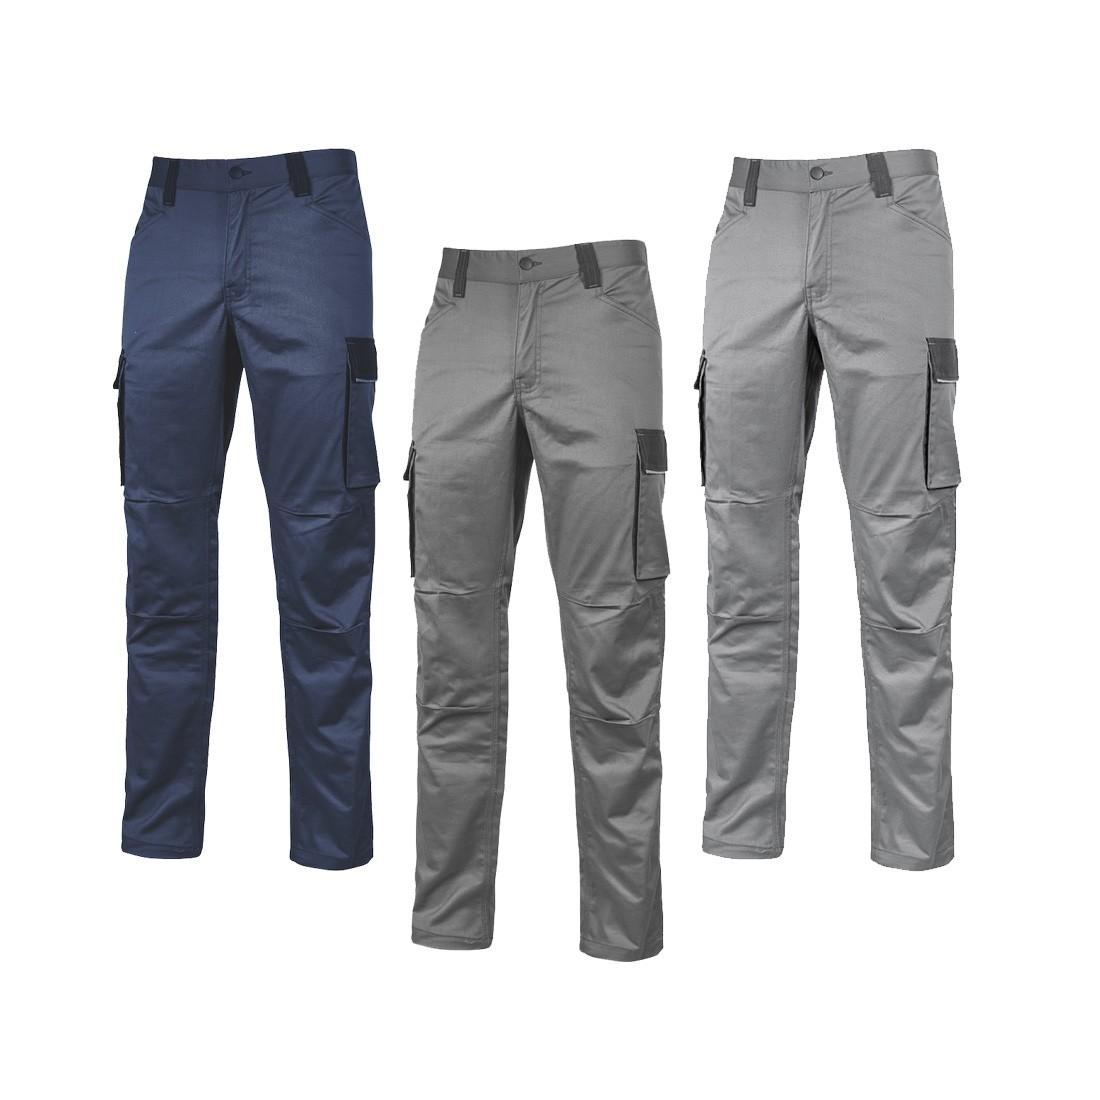 U.POWER PANTALONI CRAZY GREY IRON HY141GI